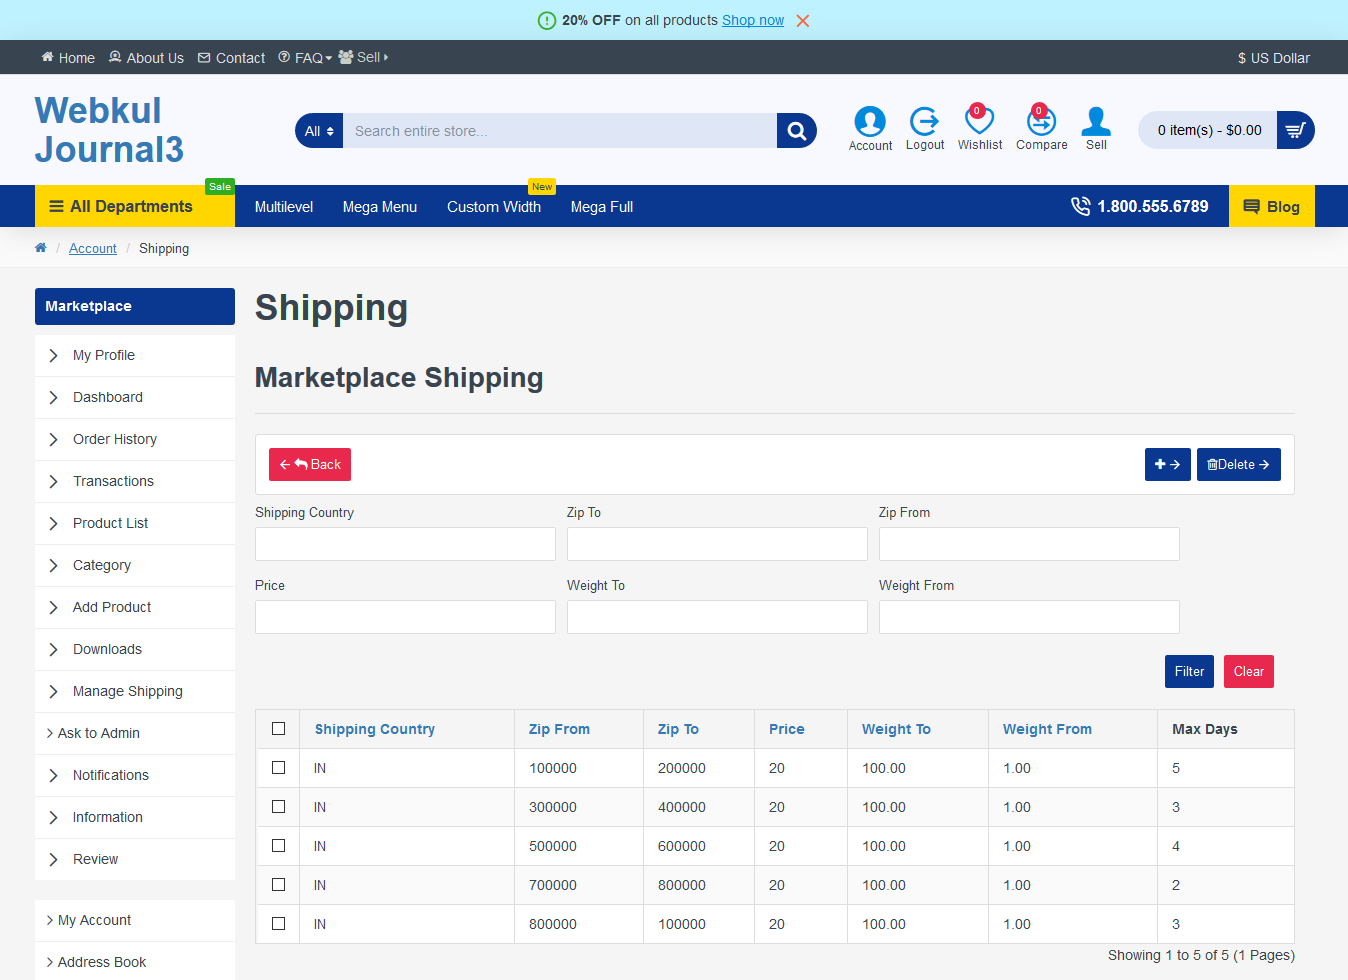 Manage Shipping by Seller